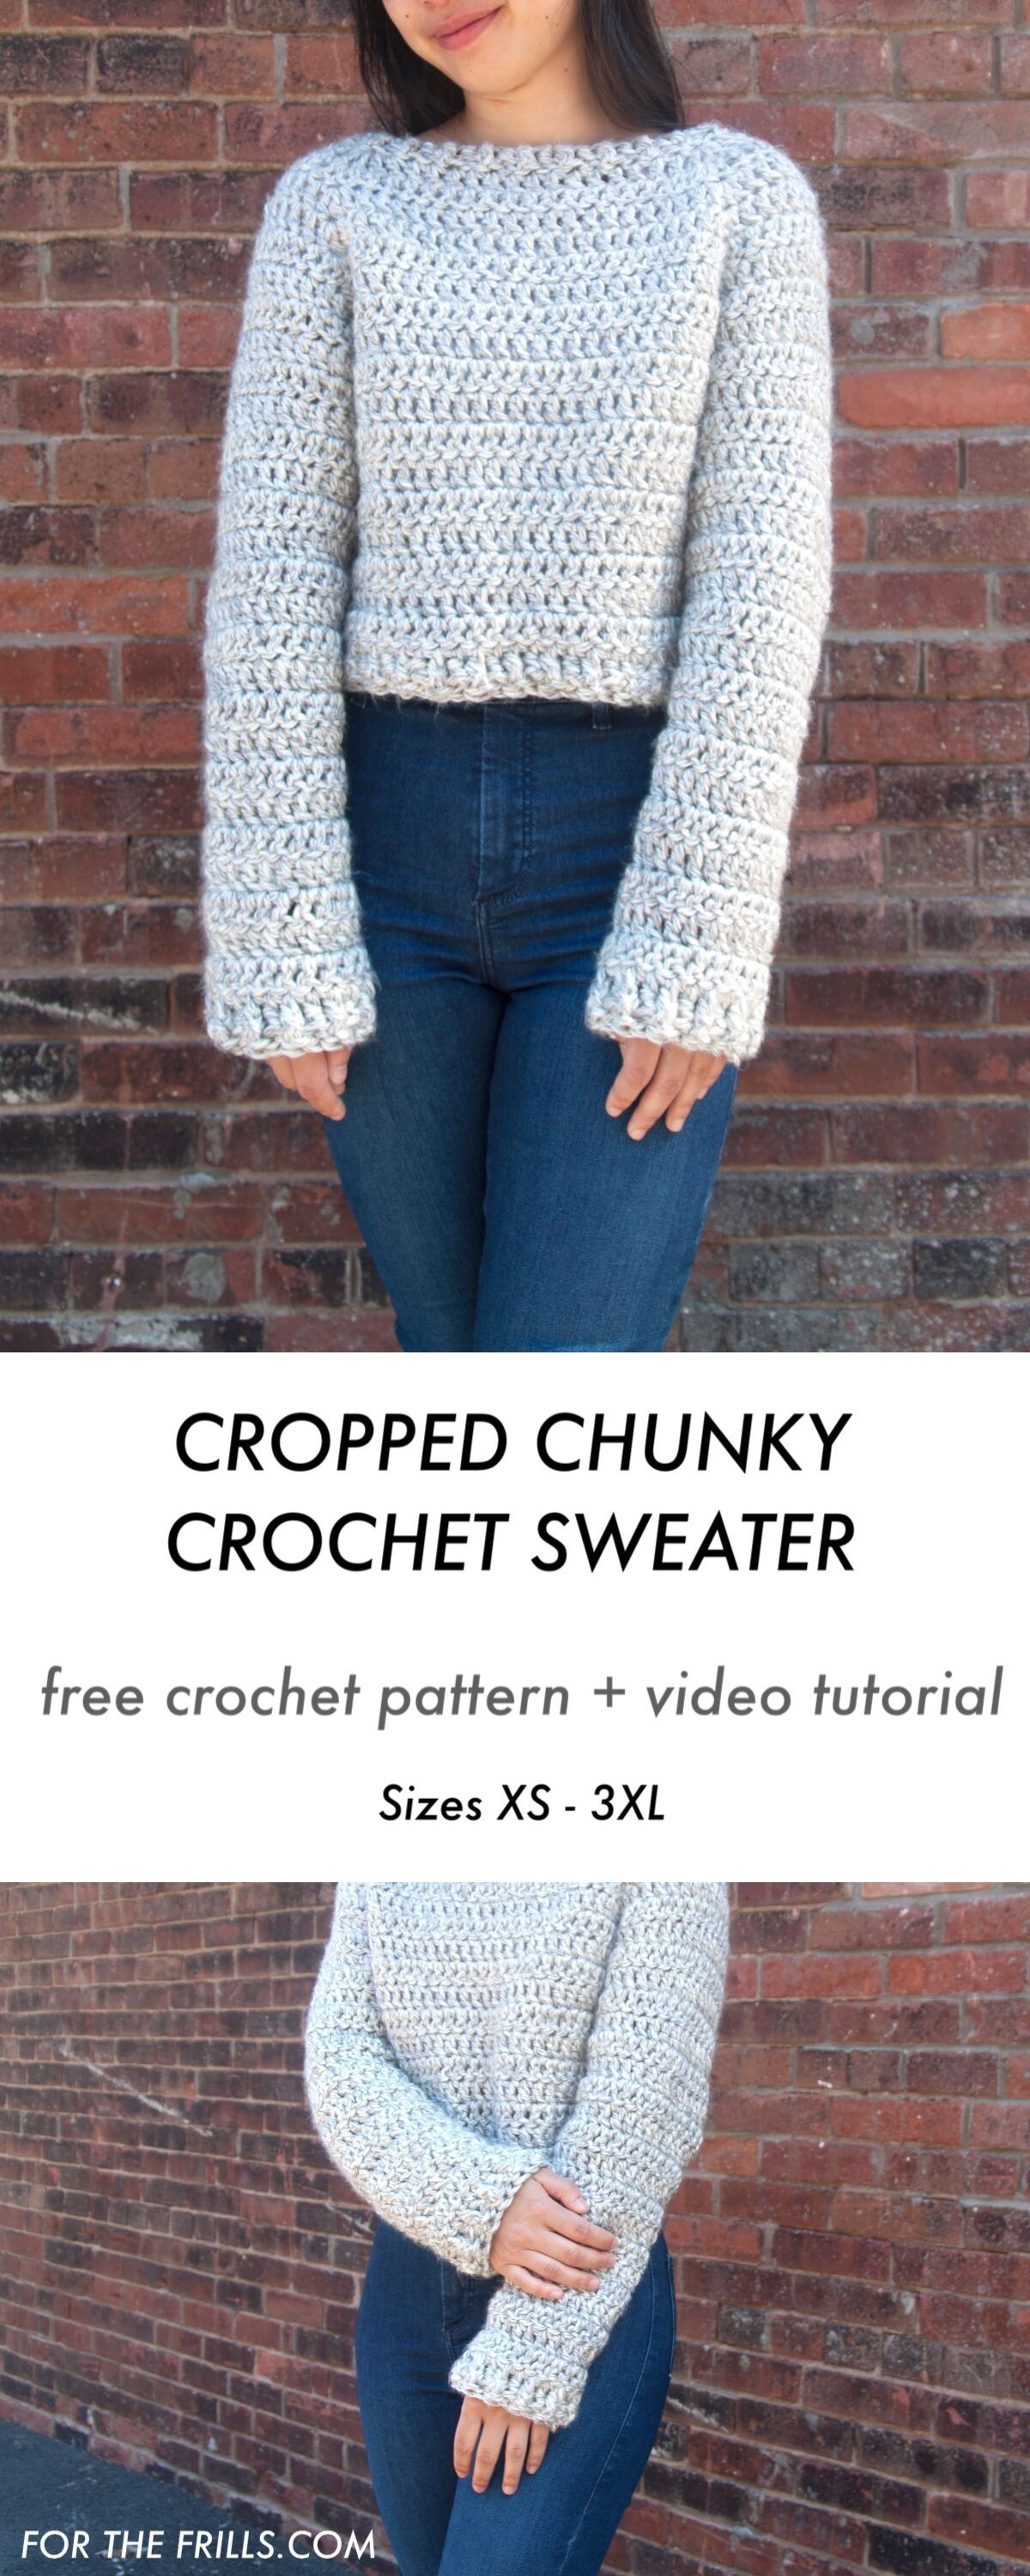 Chunky Cropped Crochet Sweater – free pattern and video tutorial for the frills